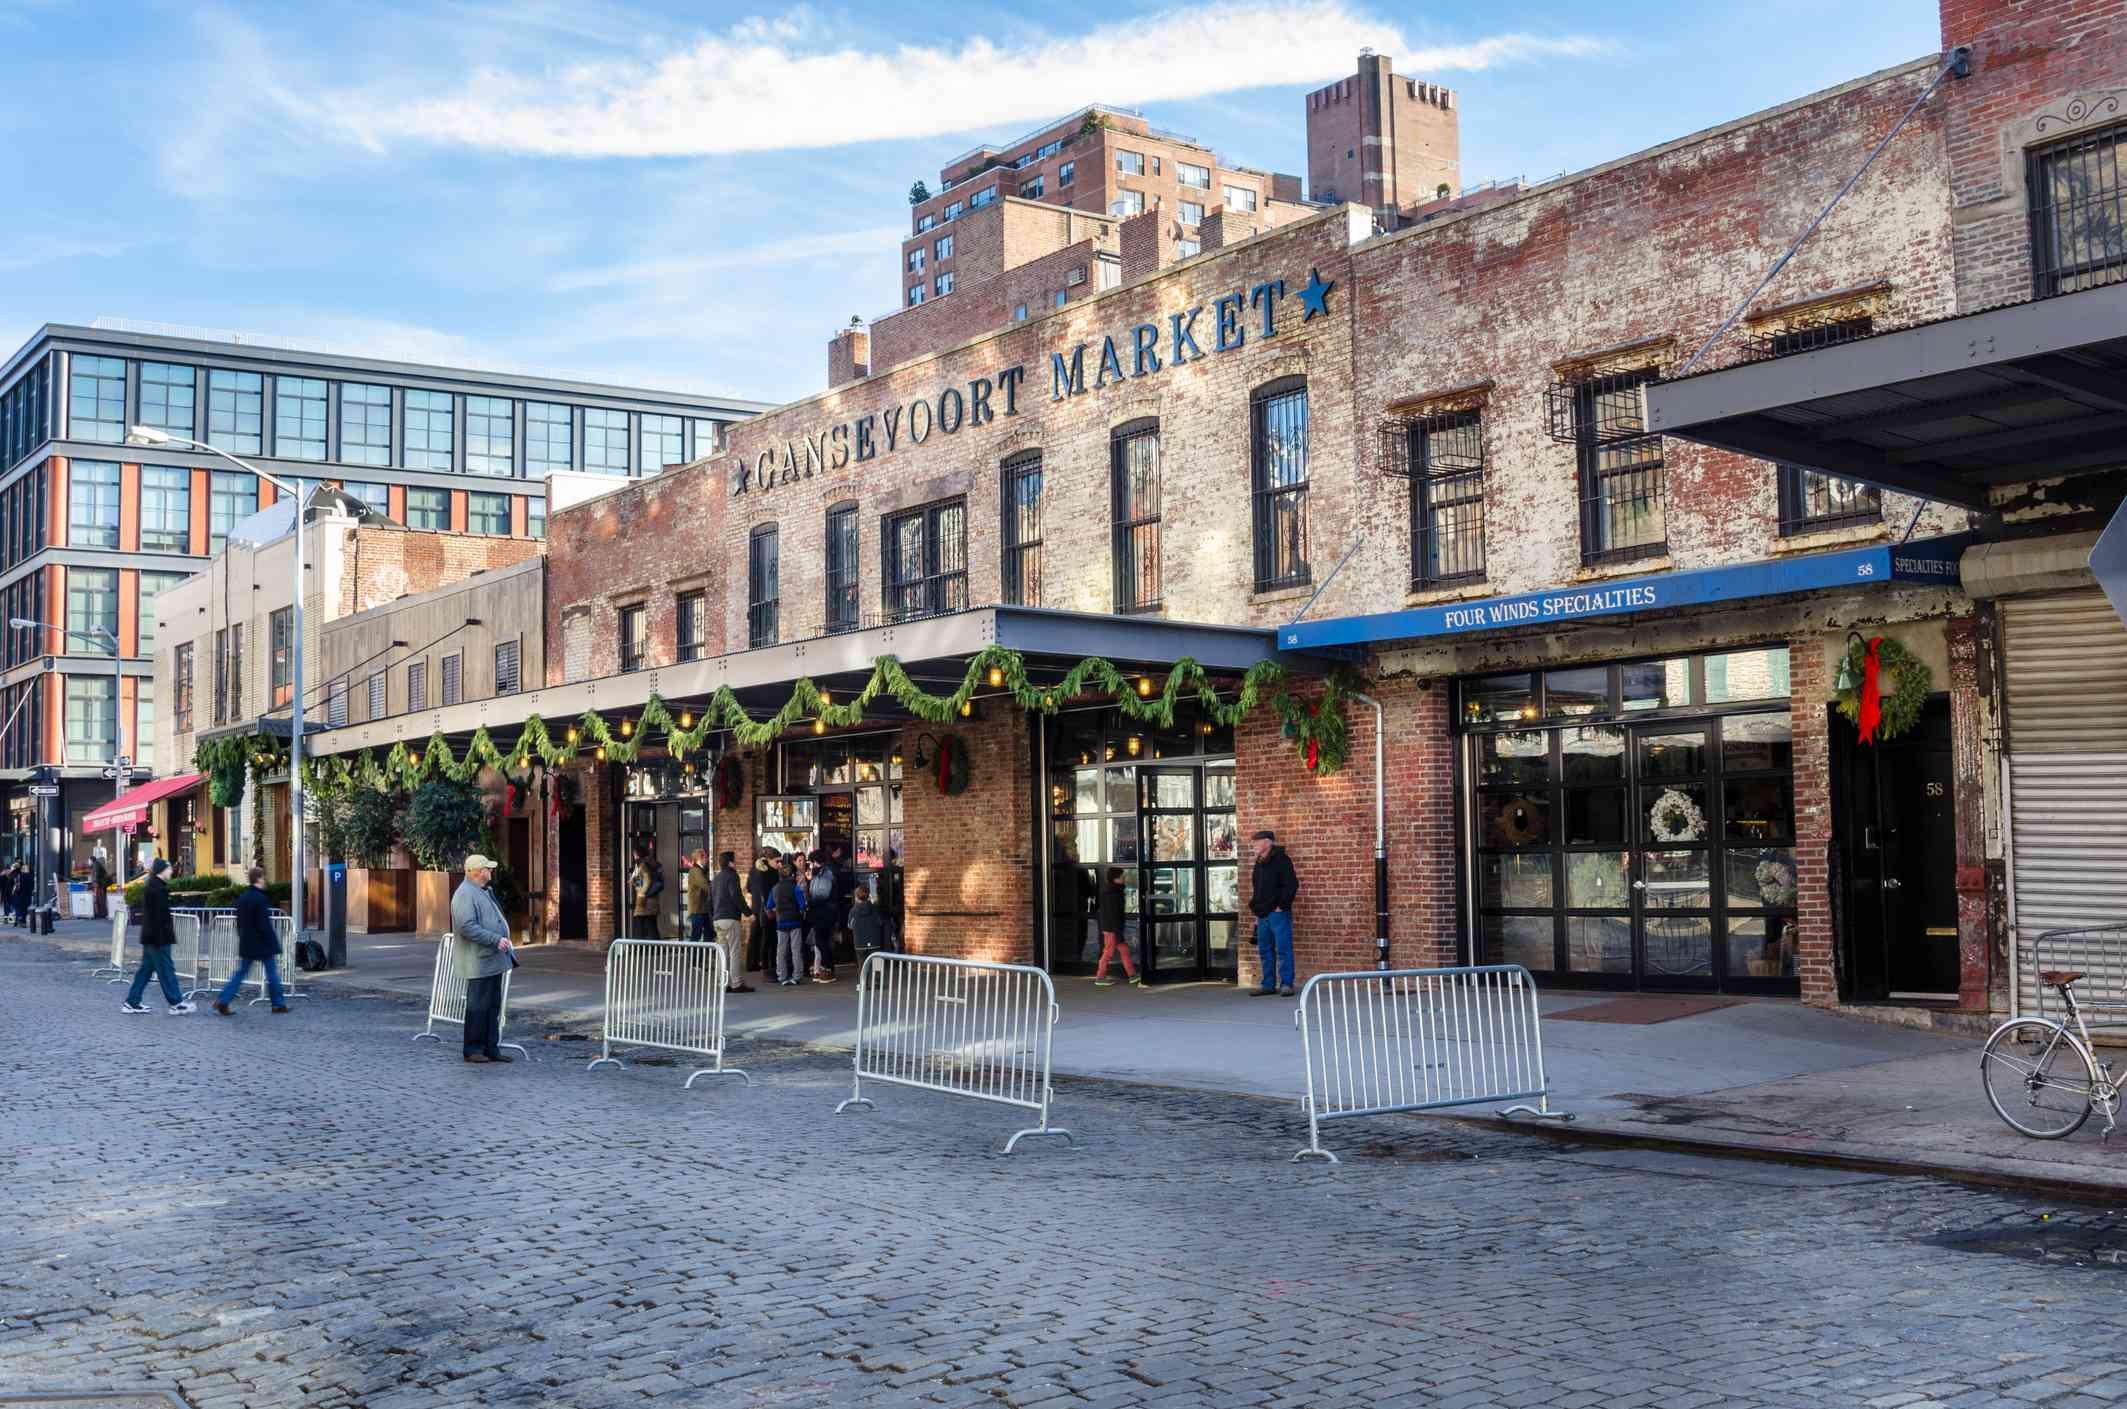 Exterior of Gansevoort Market with several people waiting outside the doors